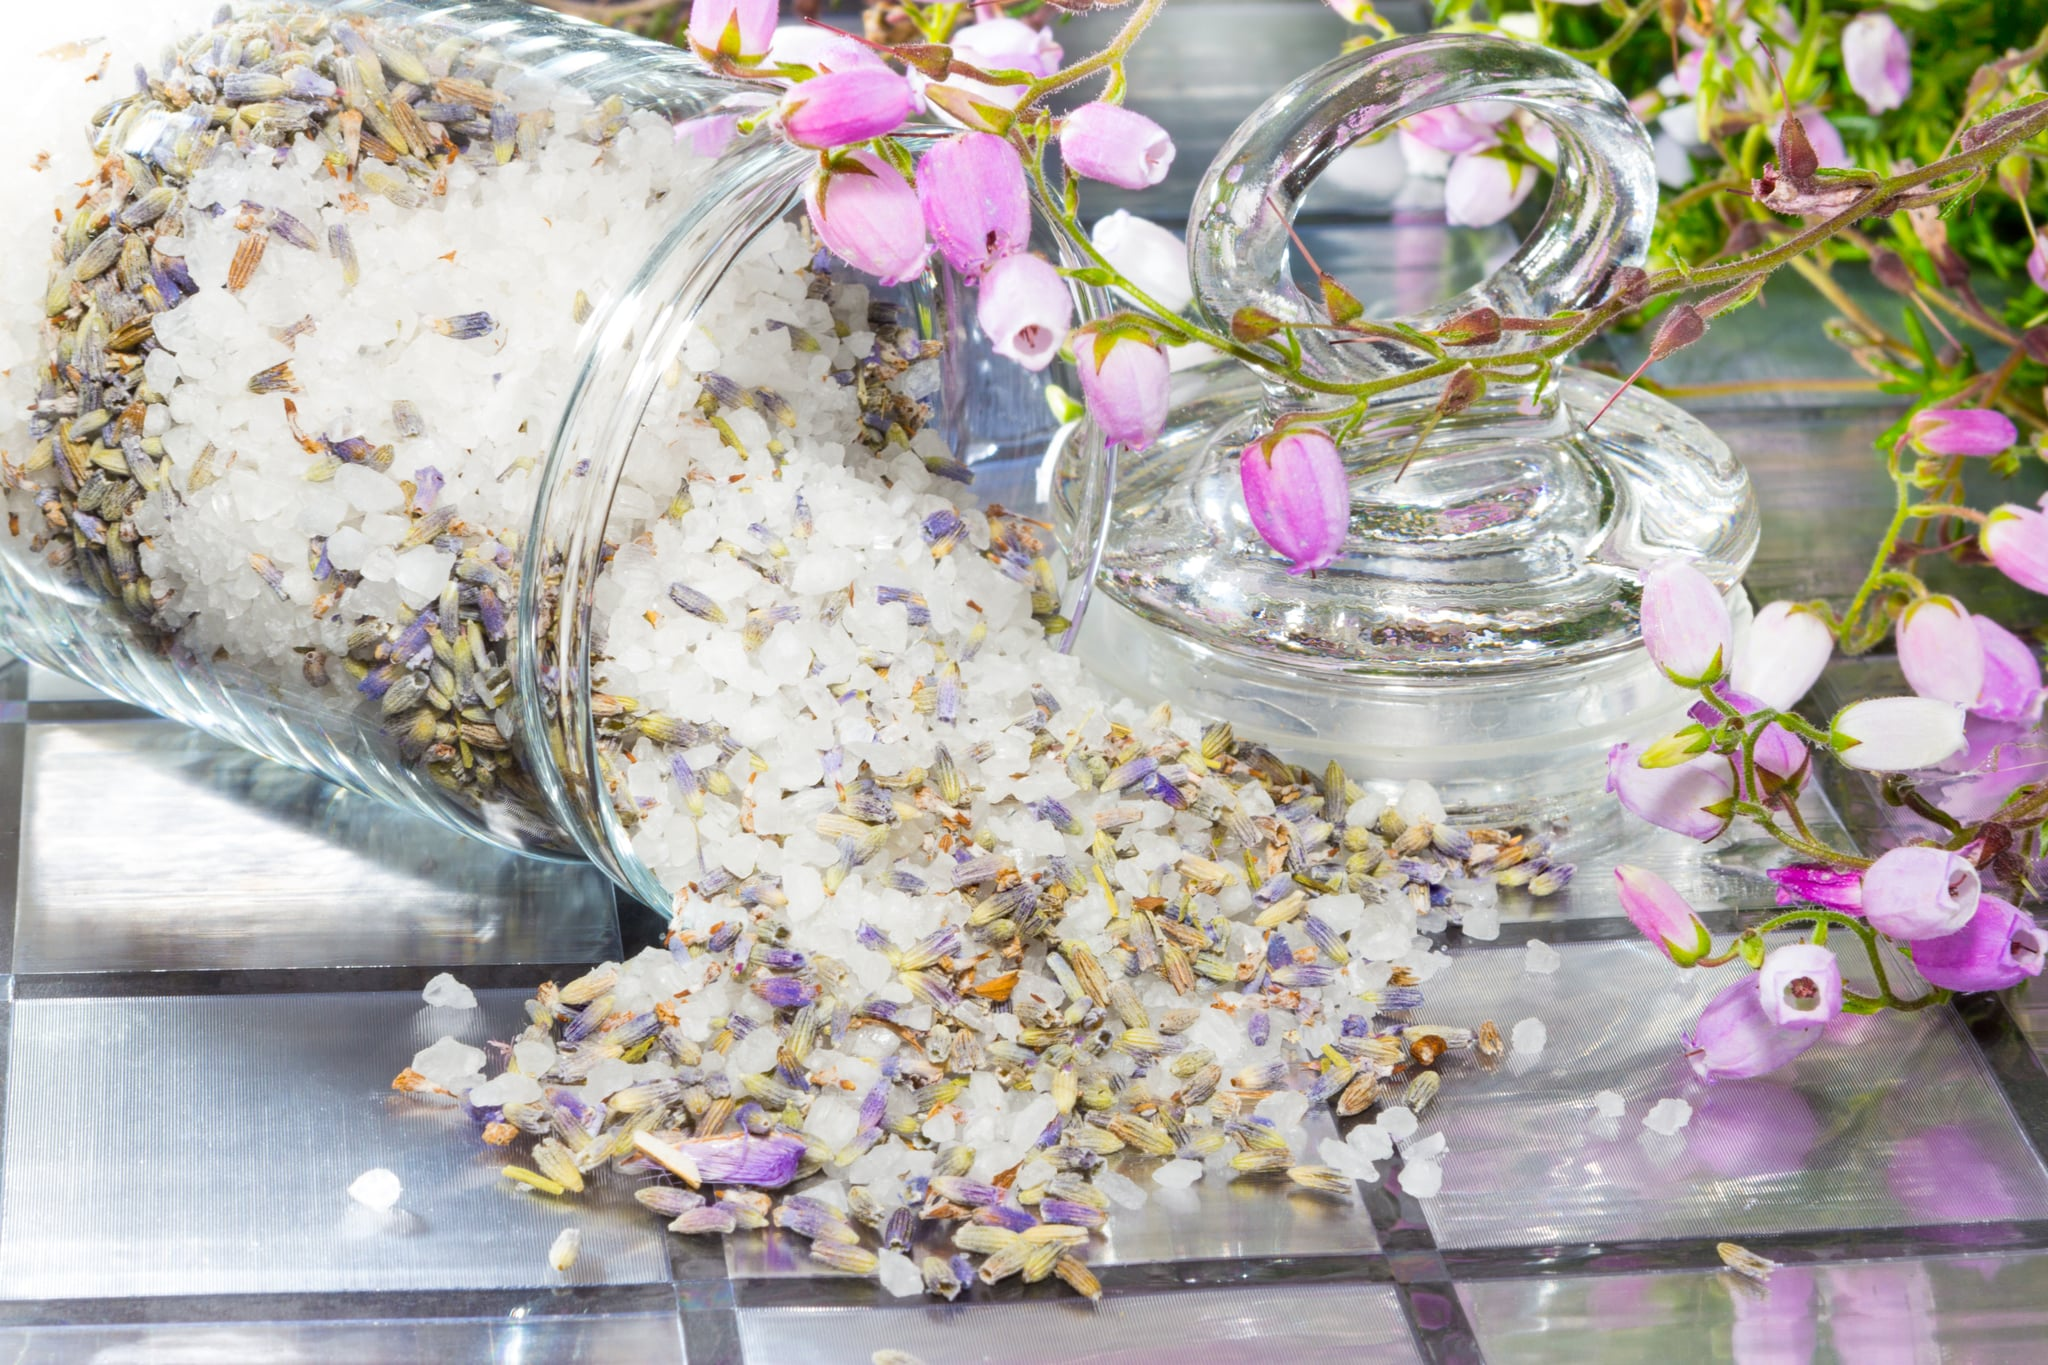 How to make homemade potpourri popsugar smart living share this link dhlflorist Image collections